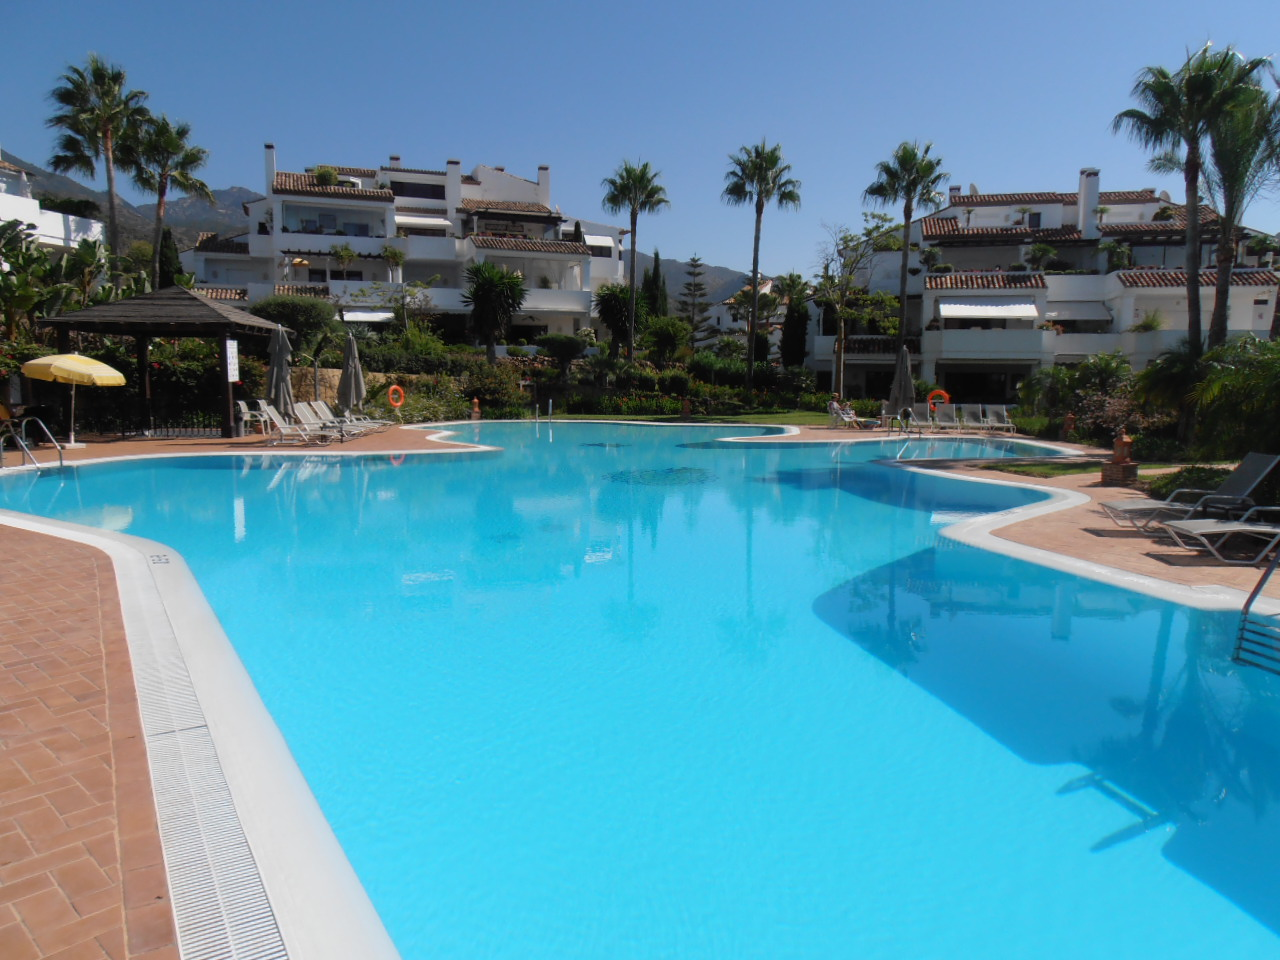 Unfurnished Duplex Penthouse Apartment in Monte Paraiso 4.500€